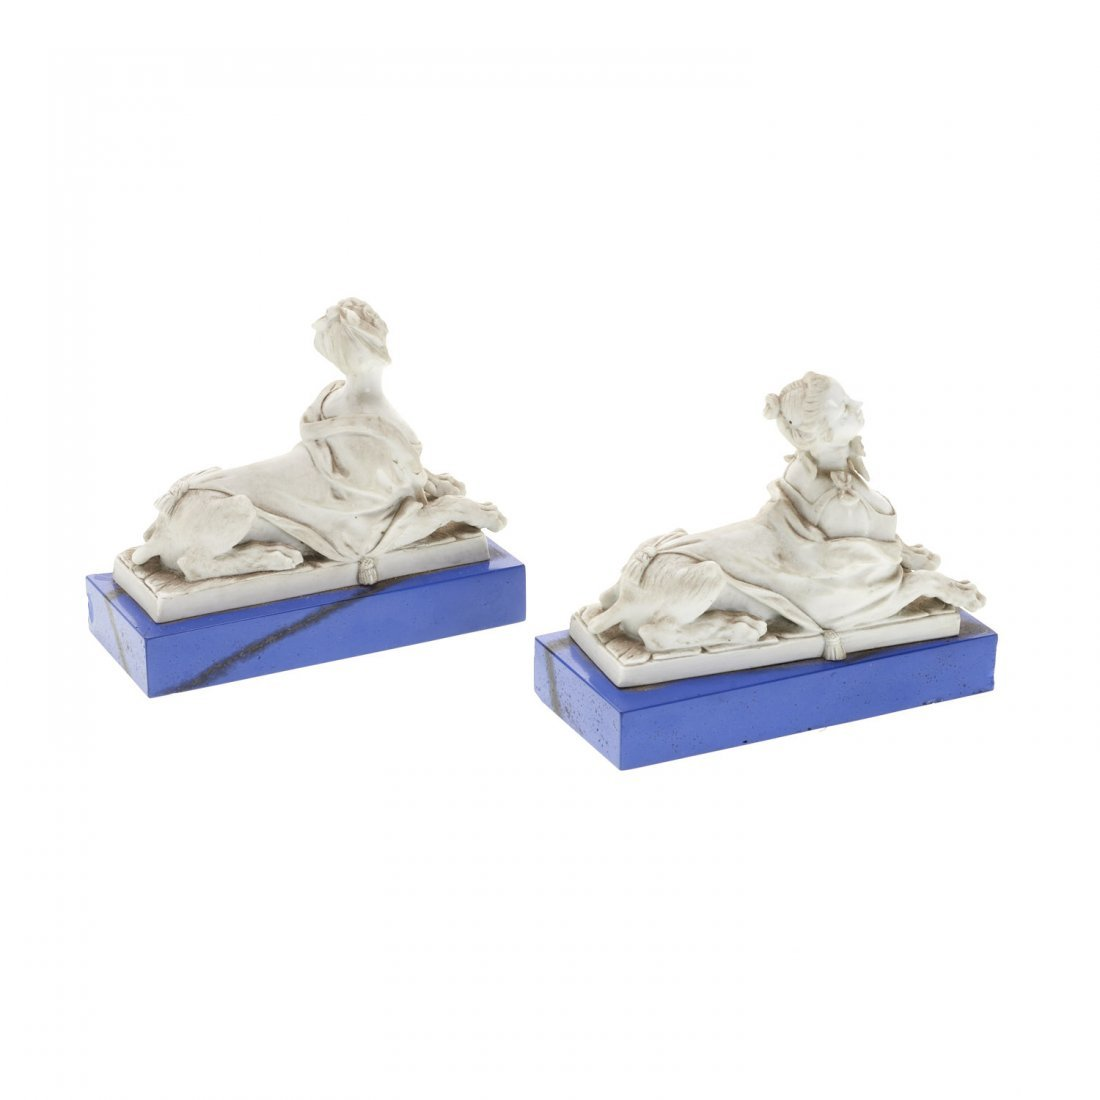 French white porcelain animorphic book ends - 3